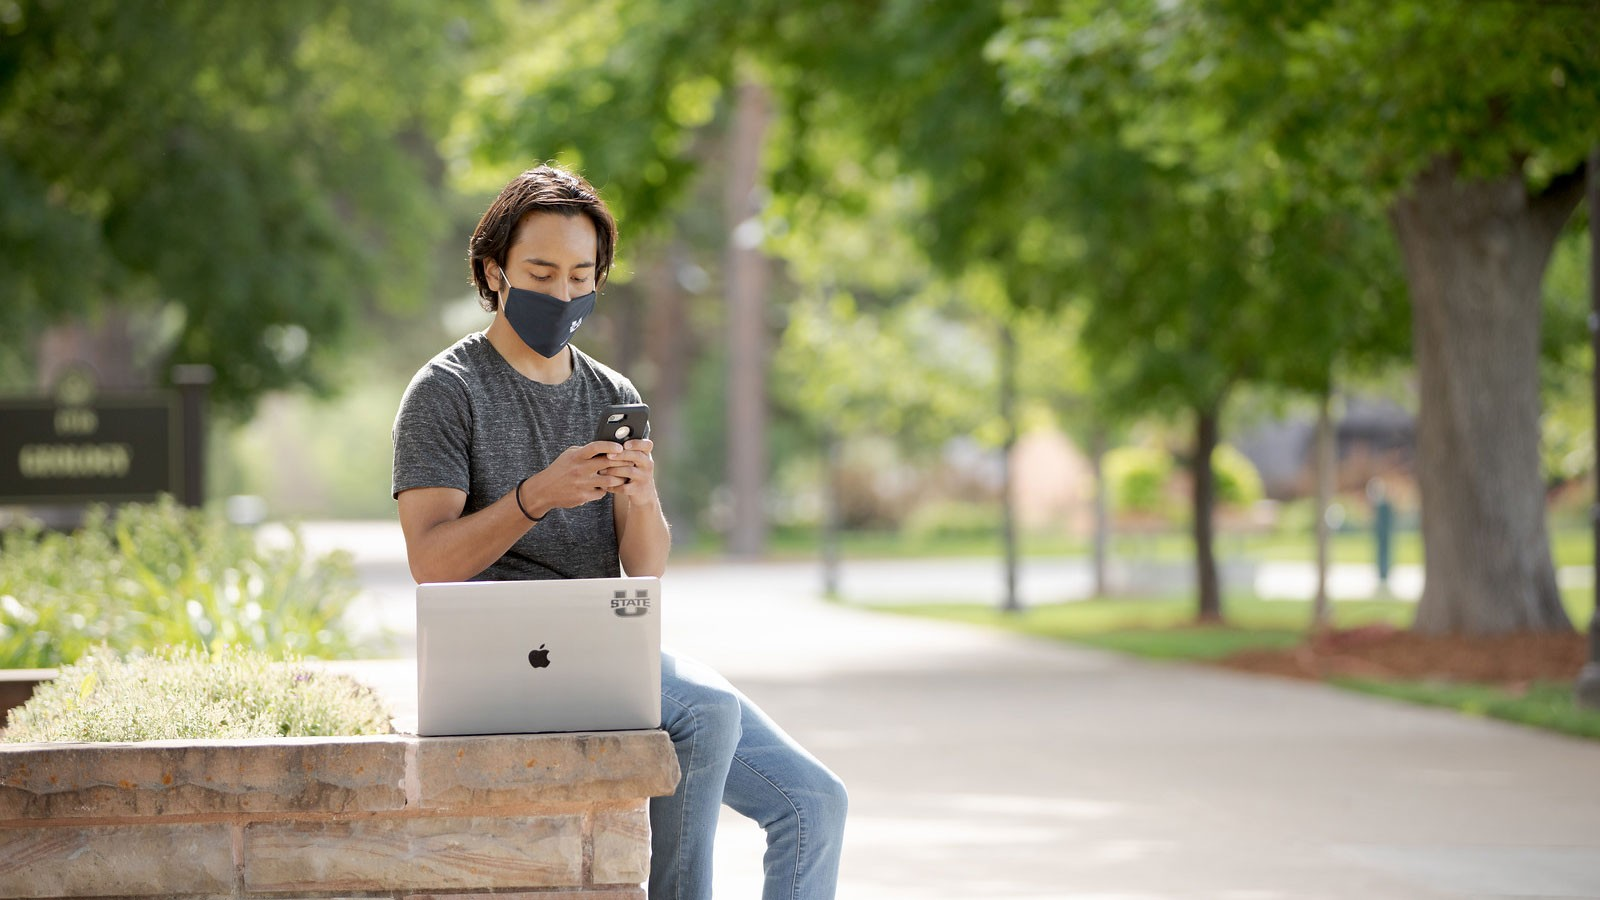 student wearing a mask and sitting next to a laptop.